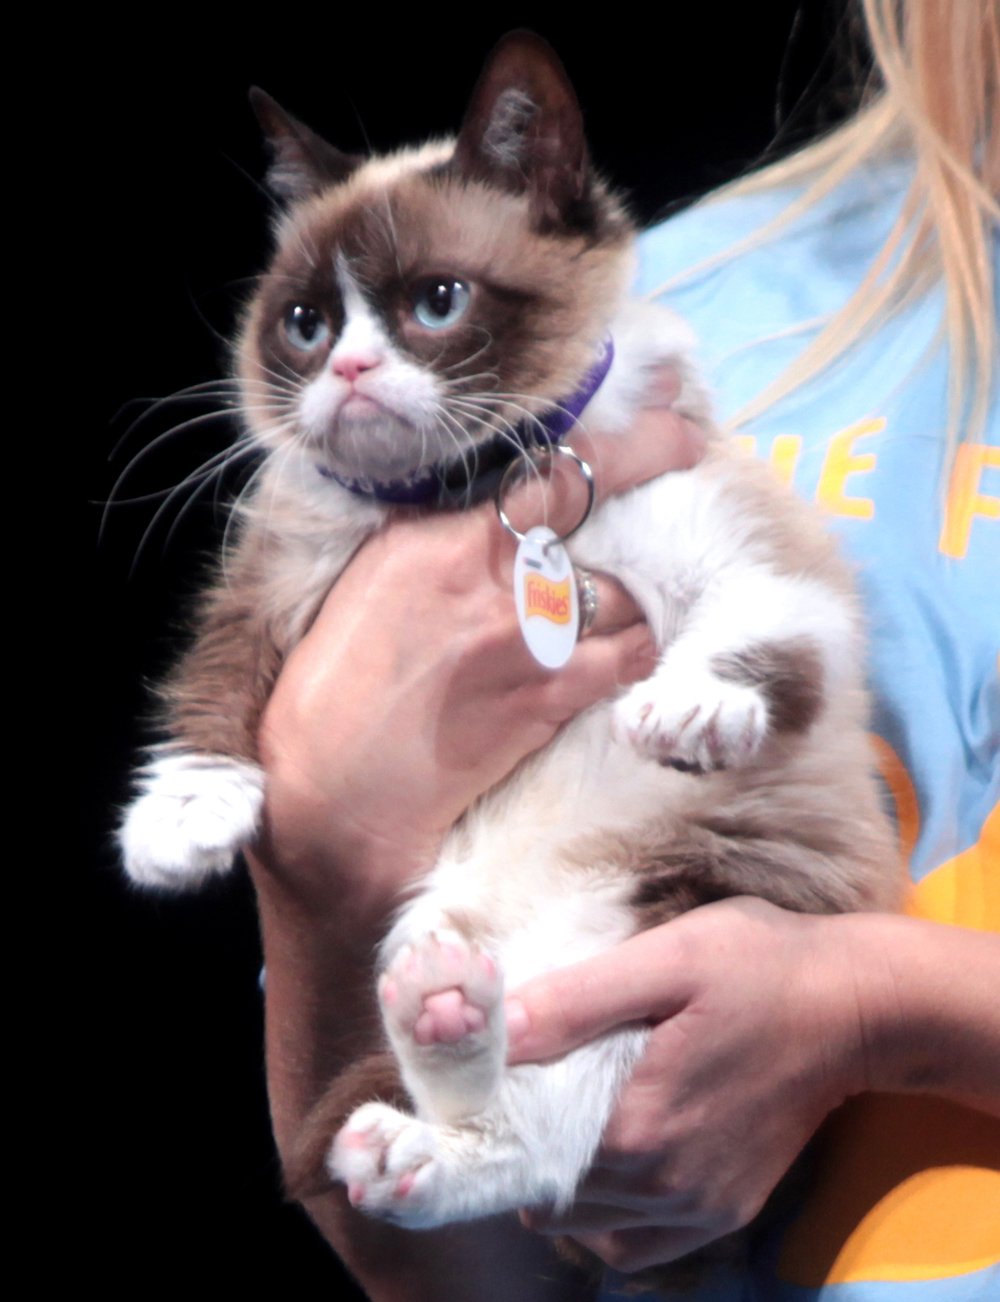 Courtesy of Gage Skidmore Grumpy cat doesn't approve of being used to improve your health.